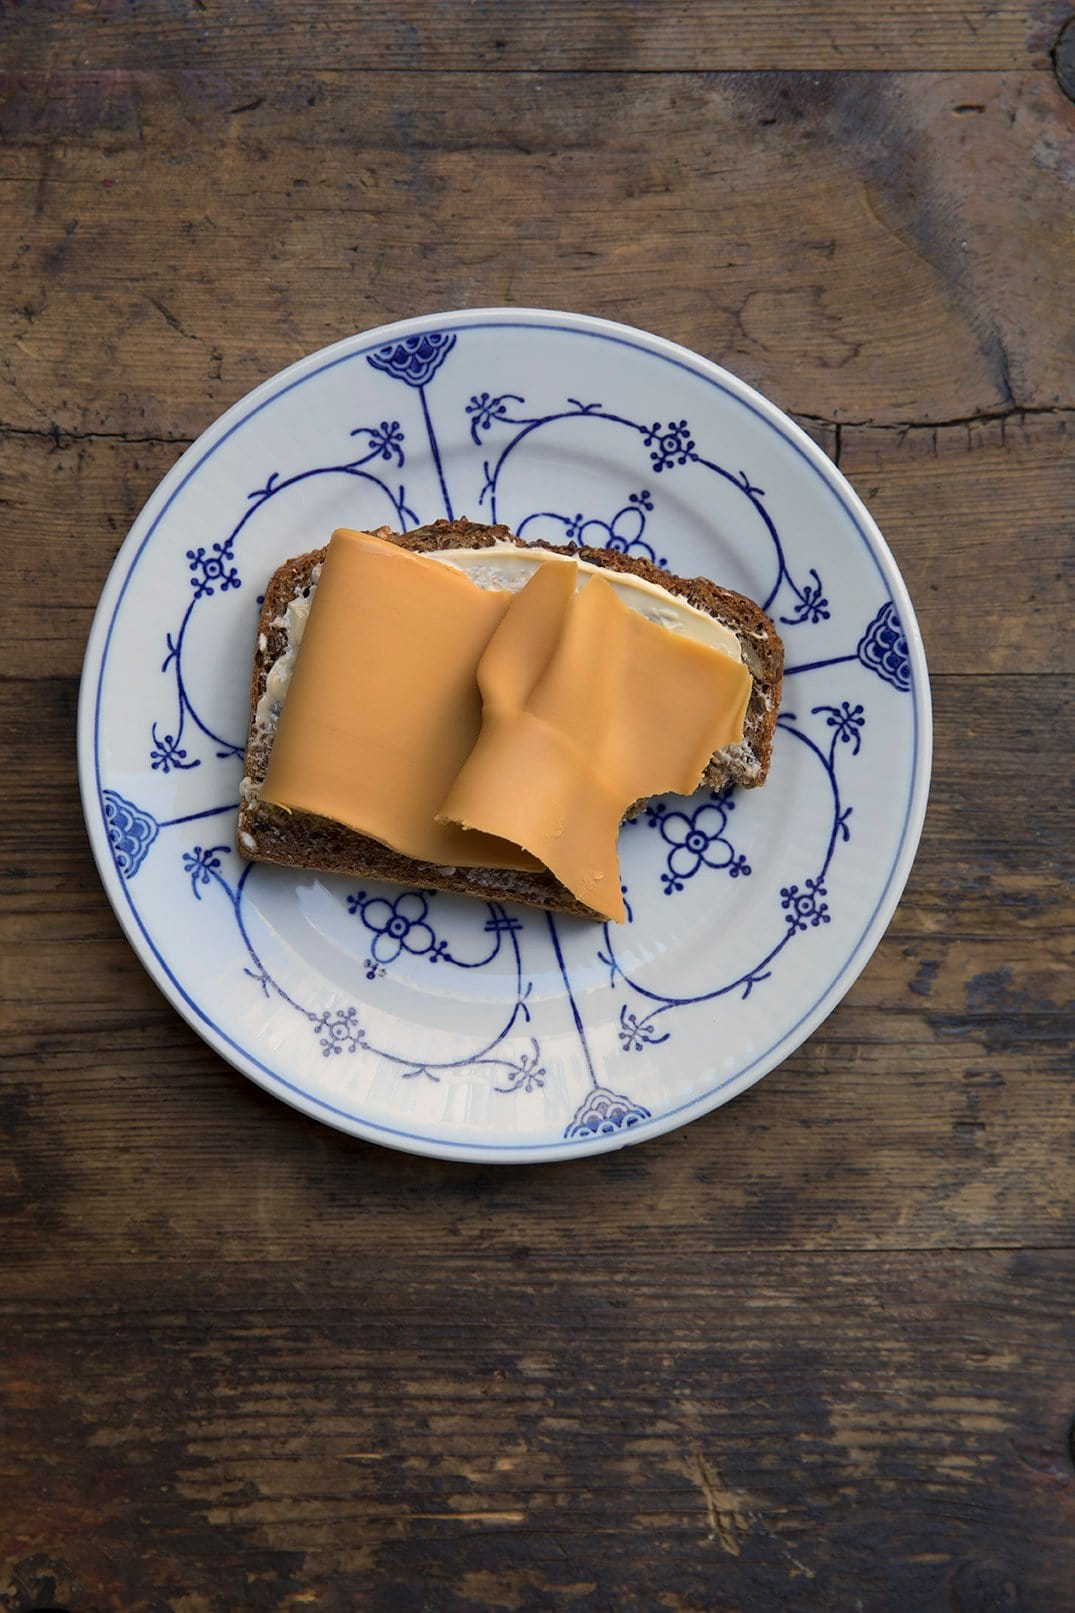 Slice of brunost on bread